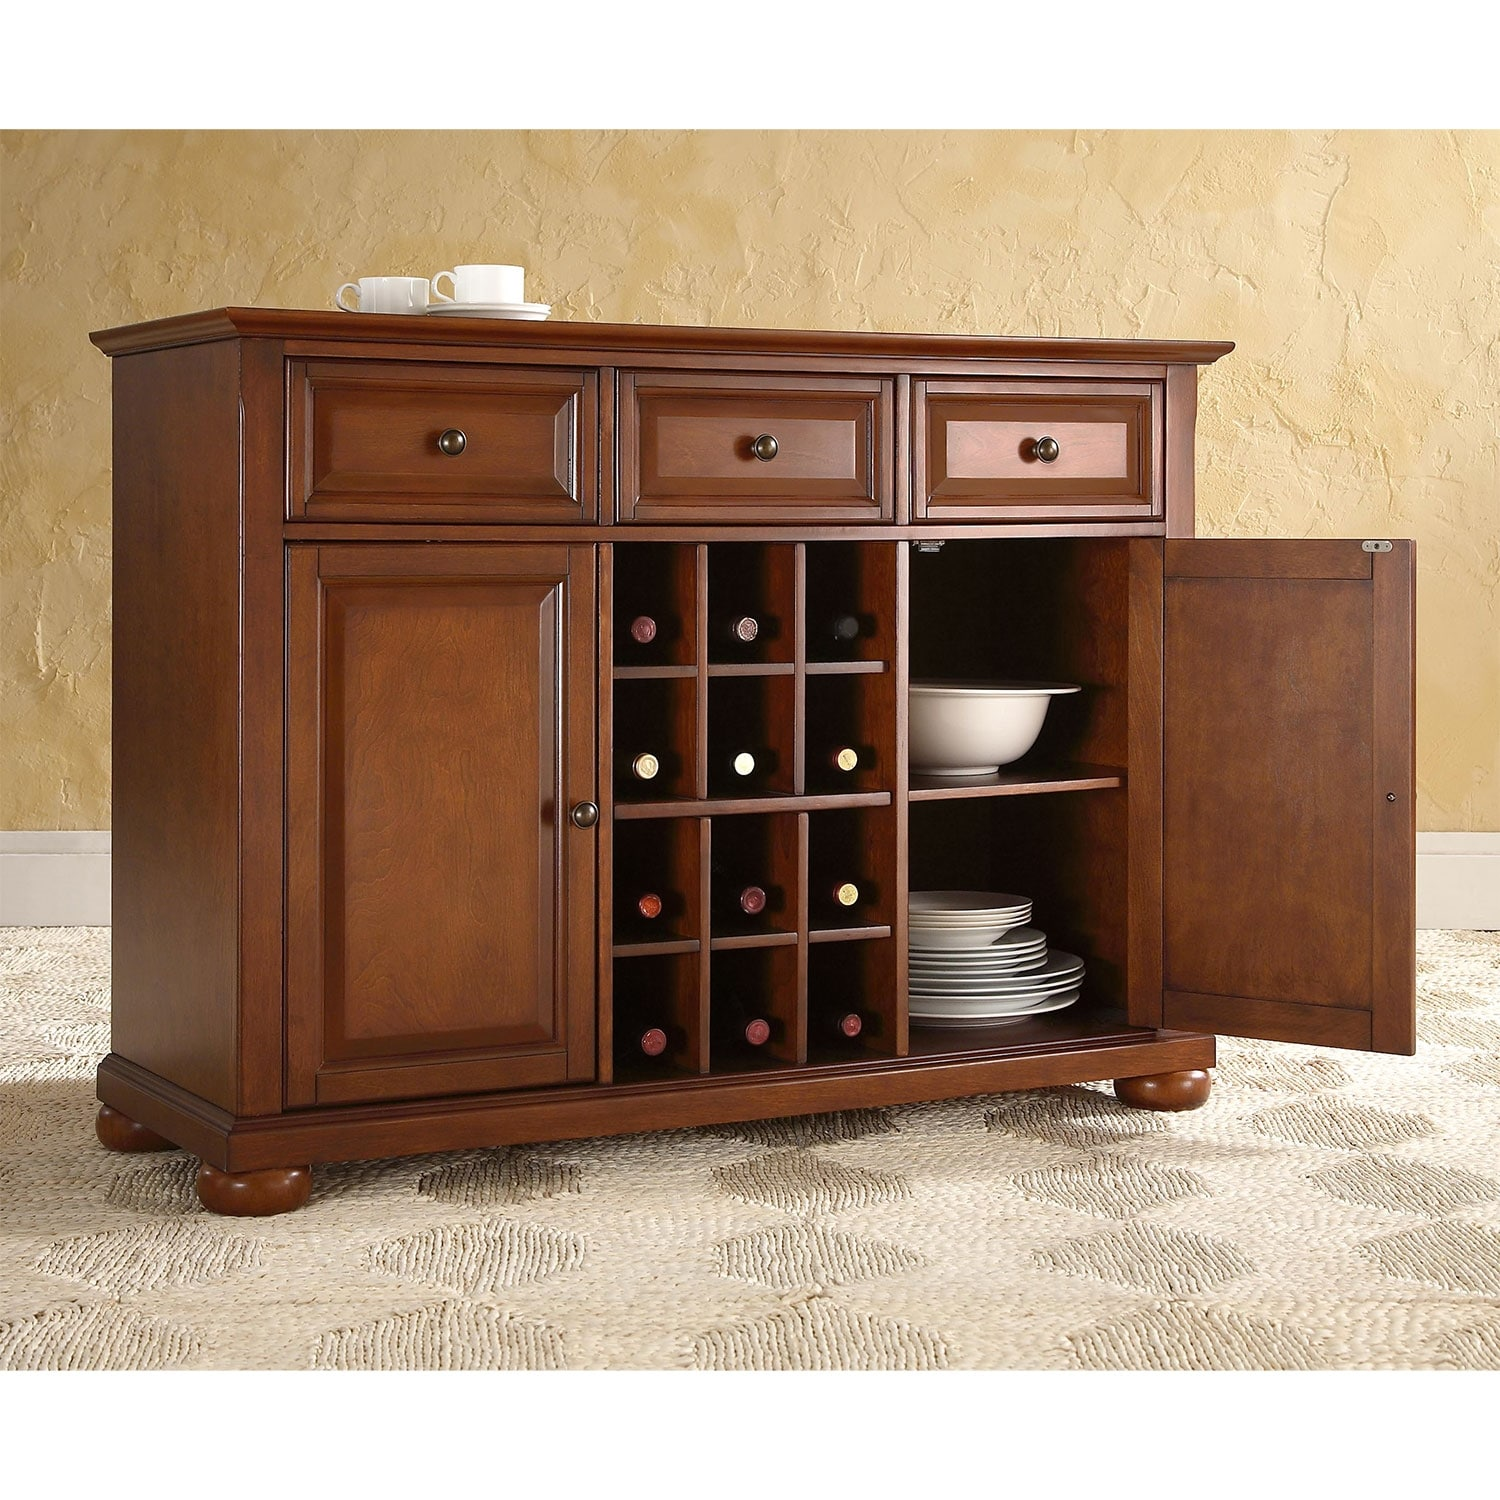 Lee Sideboard